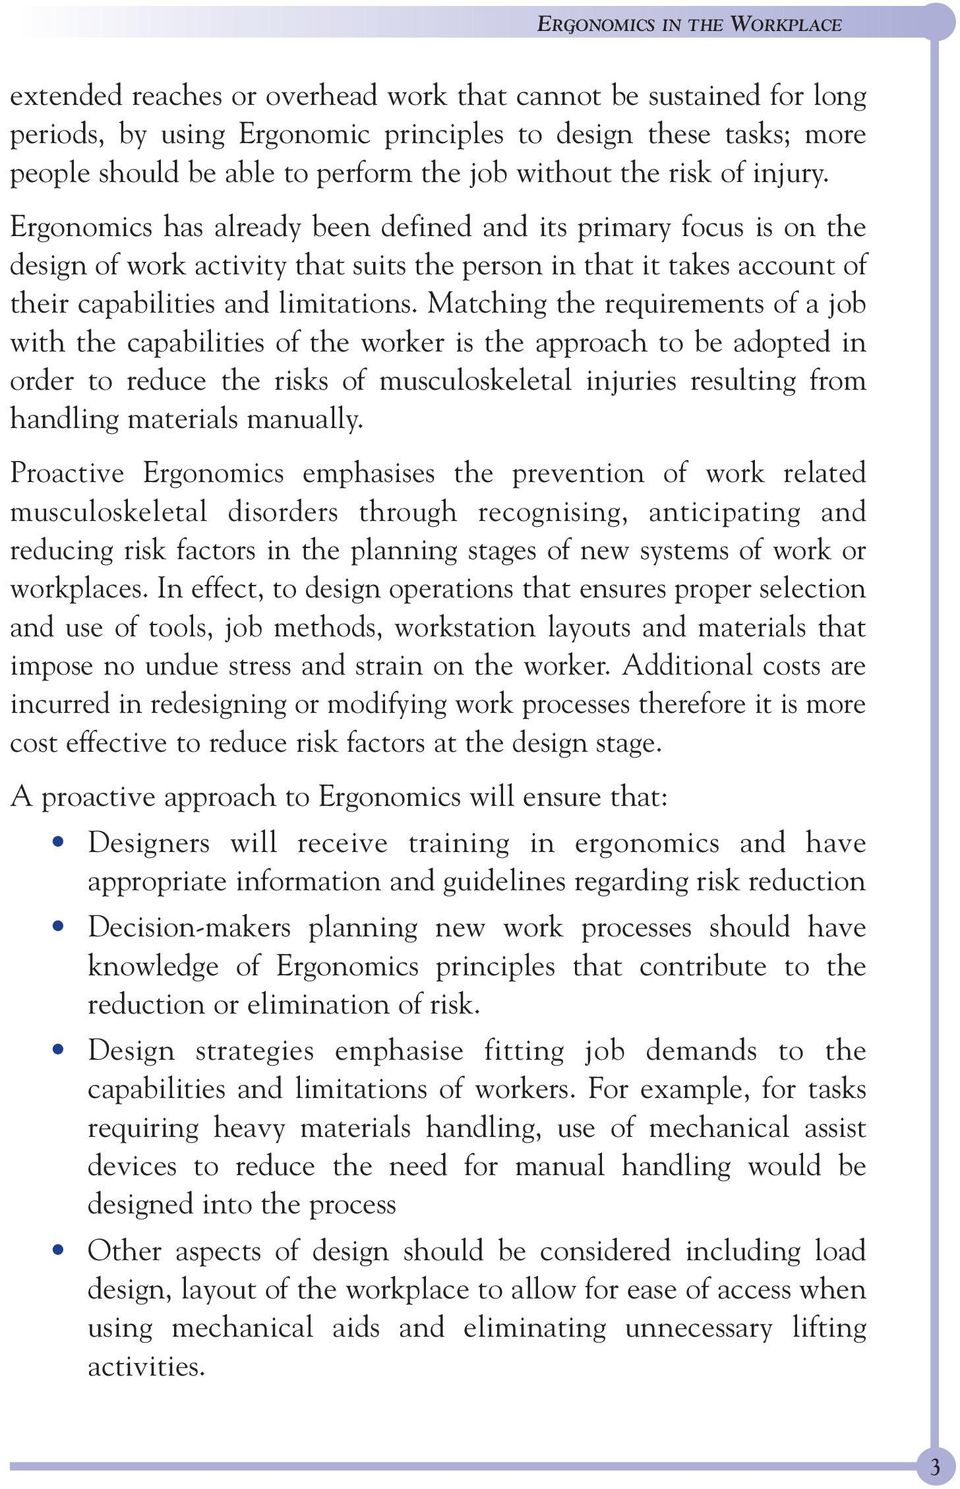 Matching the requirements of a job with the capabilities of the worker is the approach to be adopted in order to reduce the risks of musculoskeletal injuries resulting from handling materials